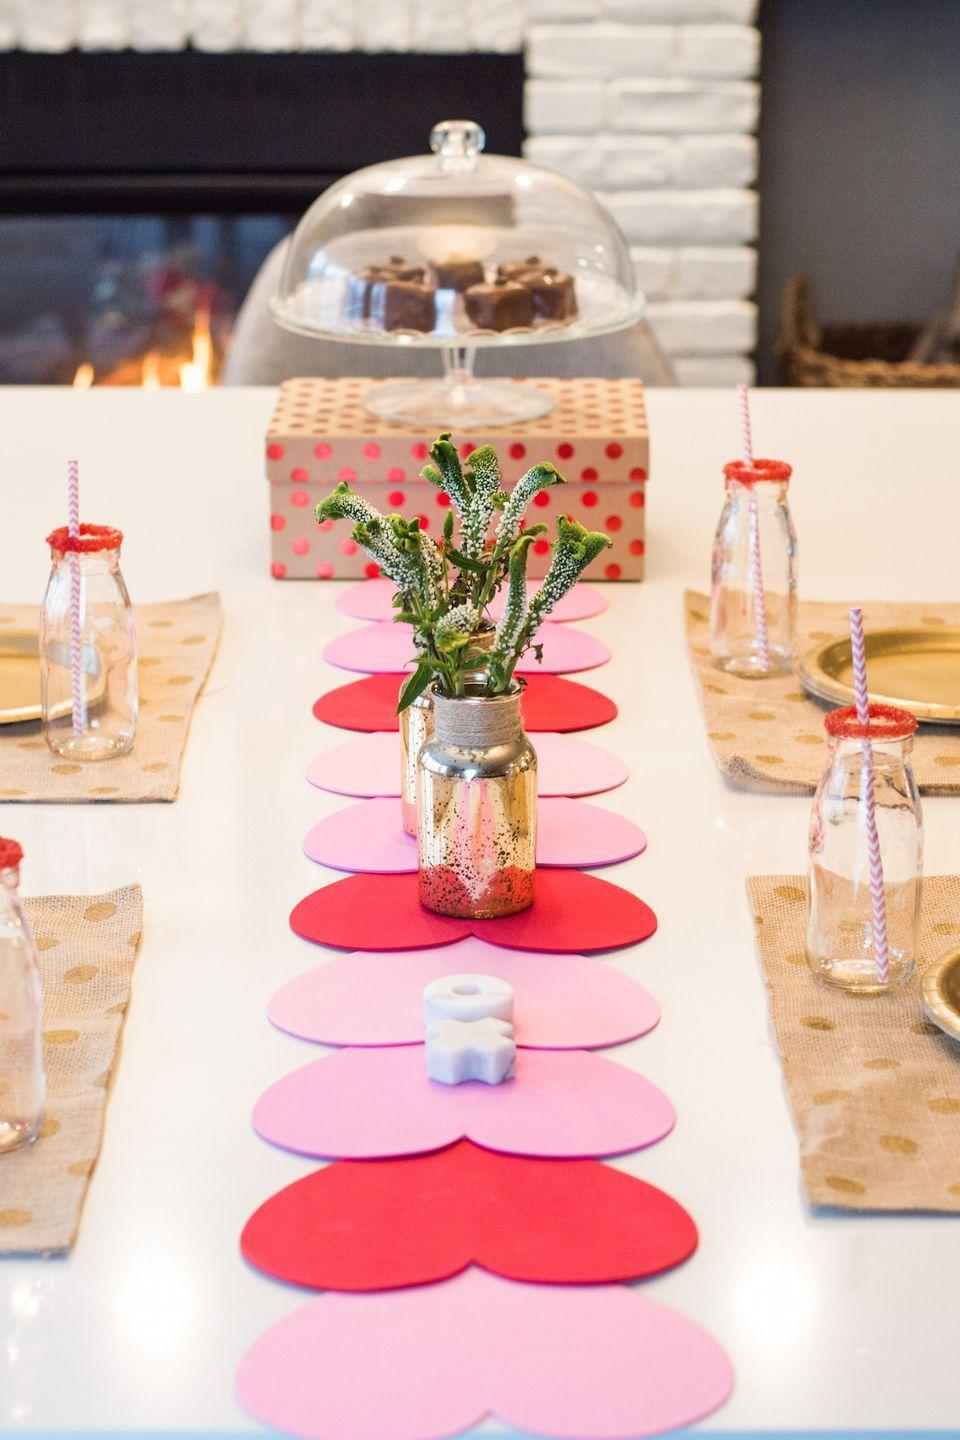 """<p>Give your Galentine's dinner table a little extra love with this sweet and simple runner, made with pre-cut hearts. </p><p><a href=""""https://www.anightowlblog.com/valentines-diy-table-runner/"""" rel=""""nofollow noopener"""" target=""""_blank"""" data-ylk=""""slk:Get the tutorial at A Night Owl »"""" class=""""link rapid-noclick-resp""""><em>Get the tutorial at A Night Owl »</em> </a></p>"""